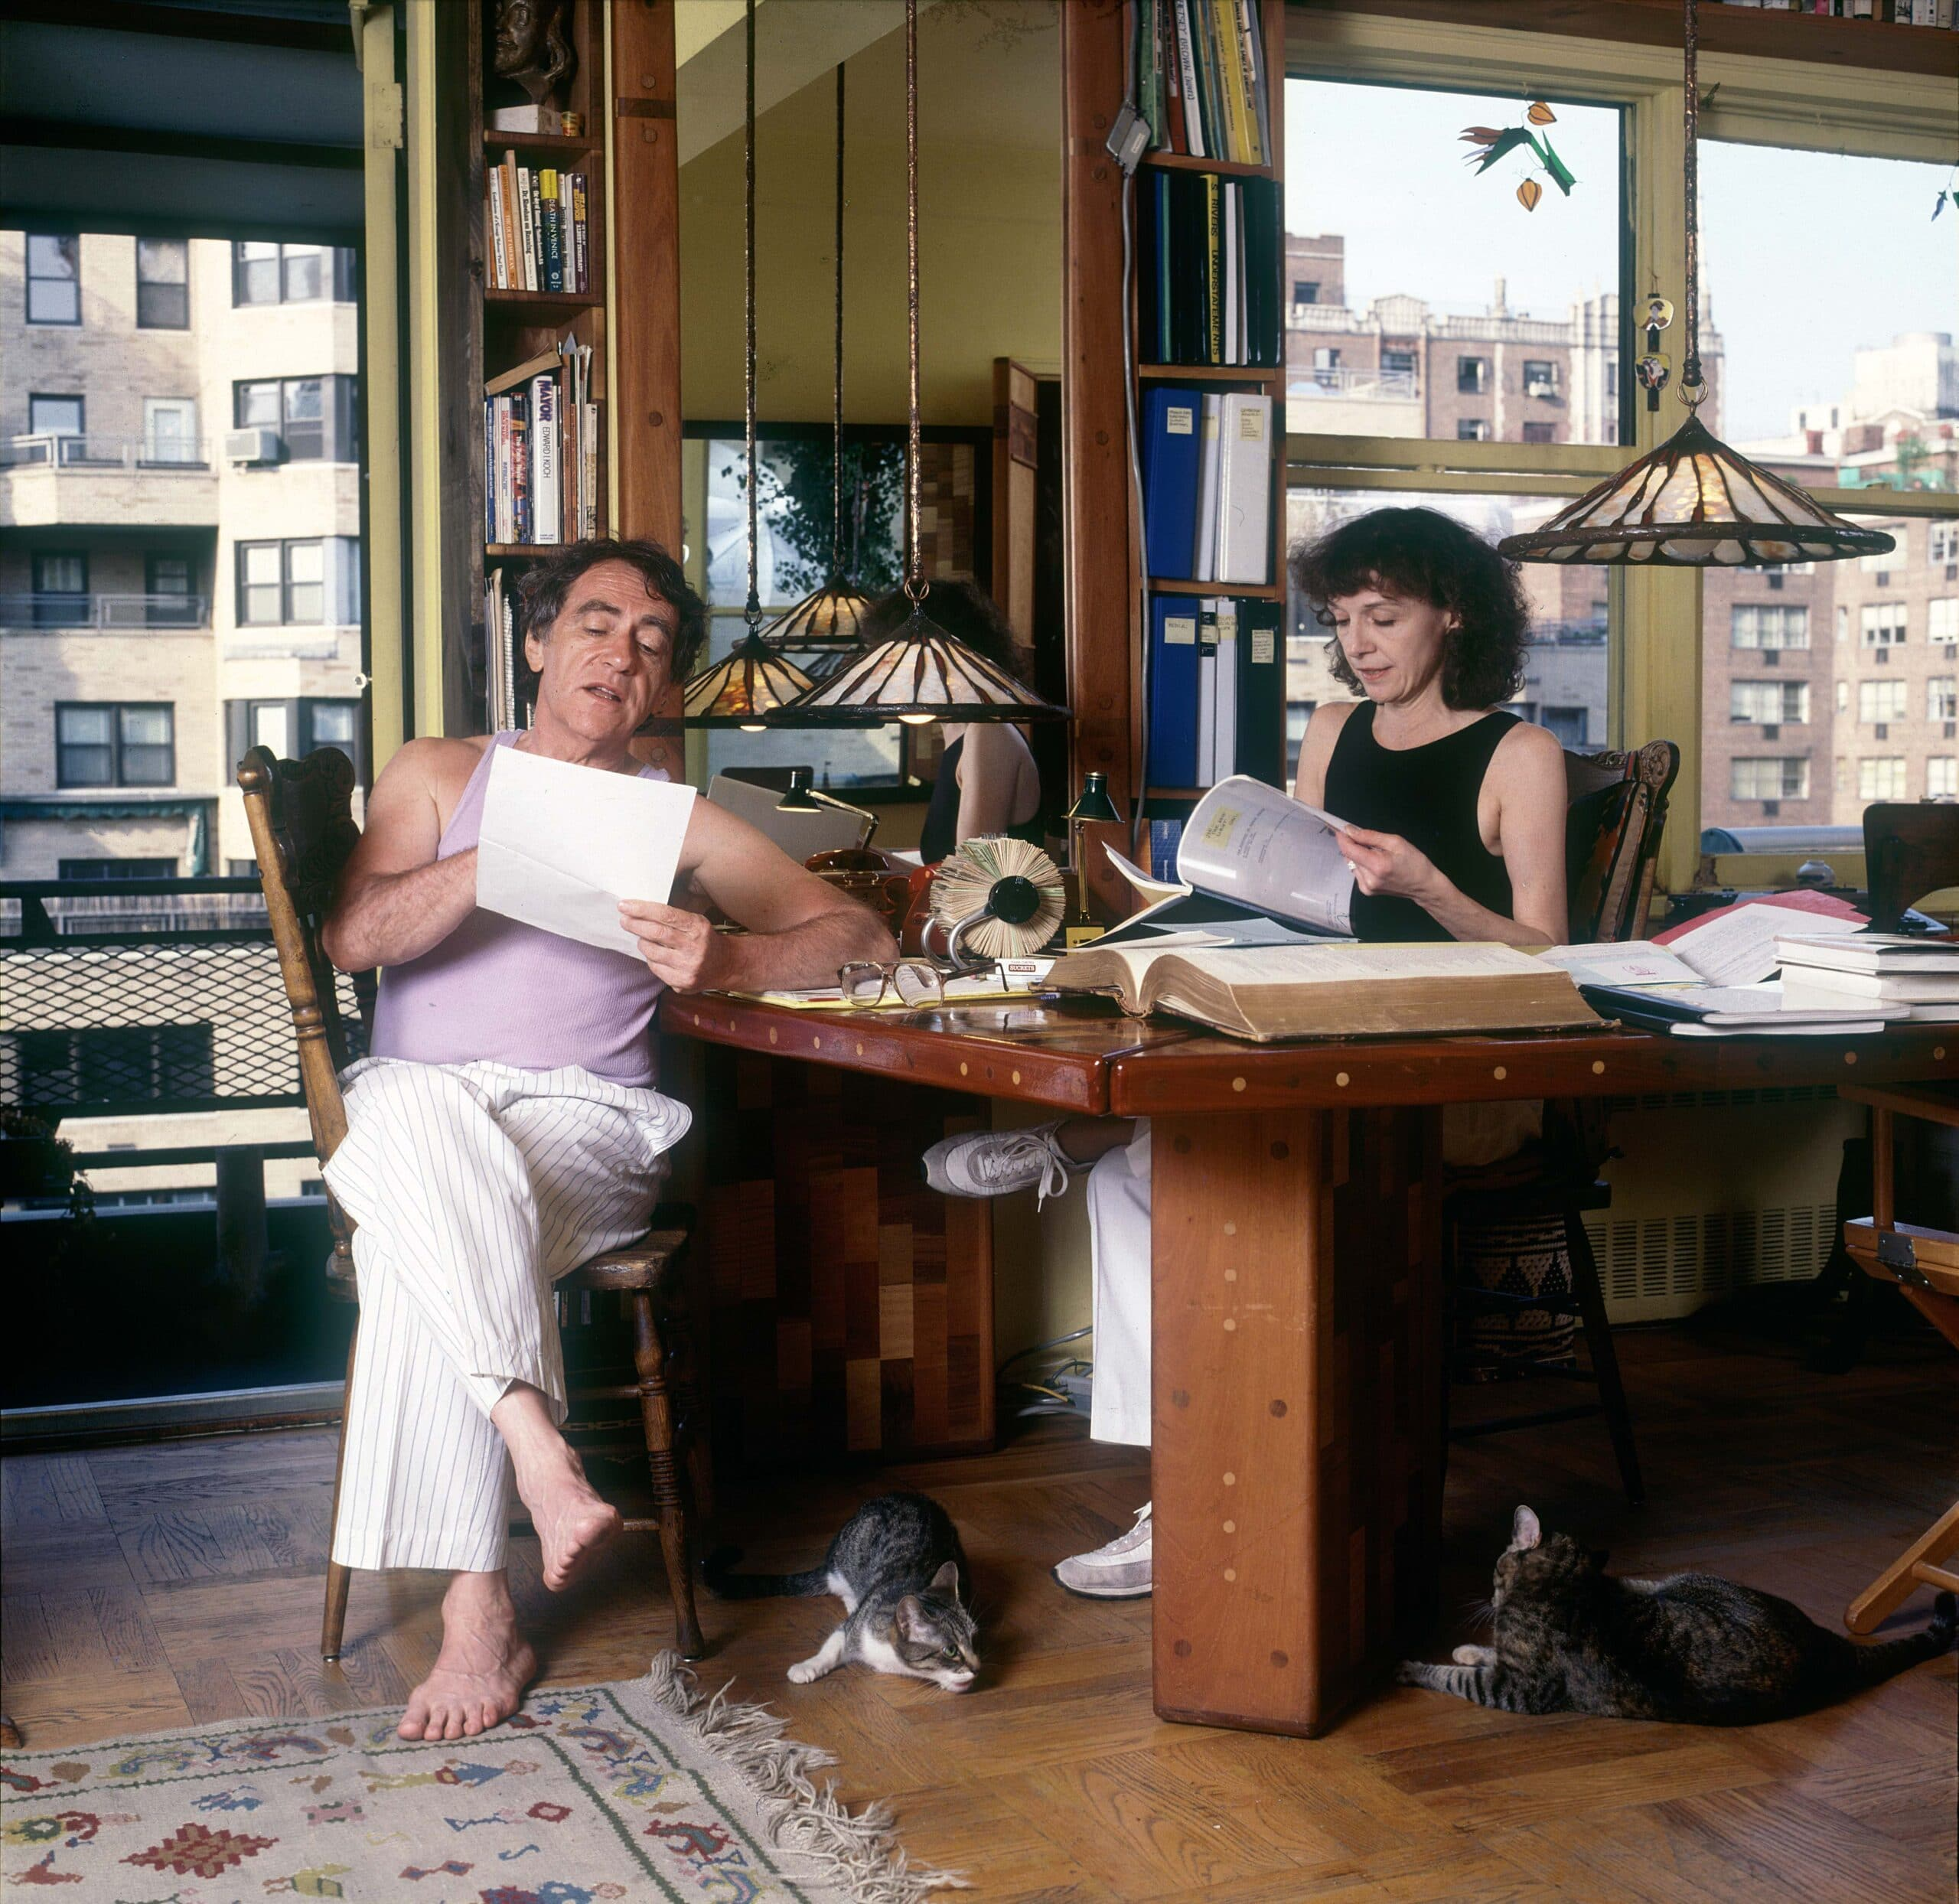 Joe & Gail Papp working at home